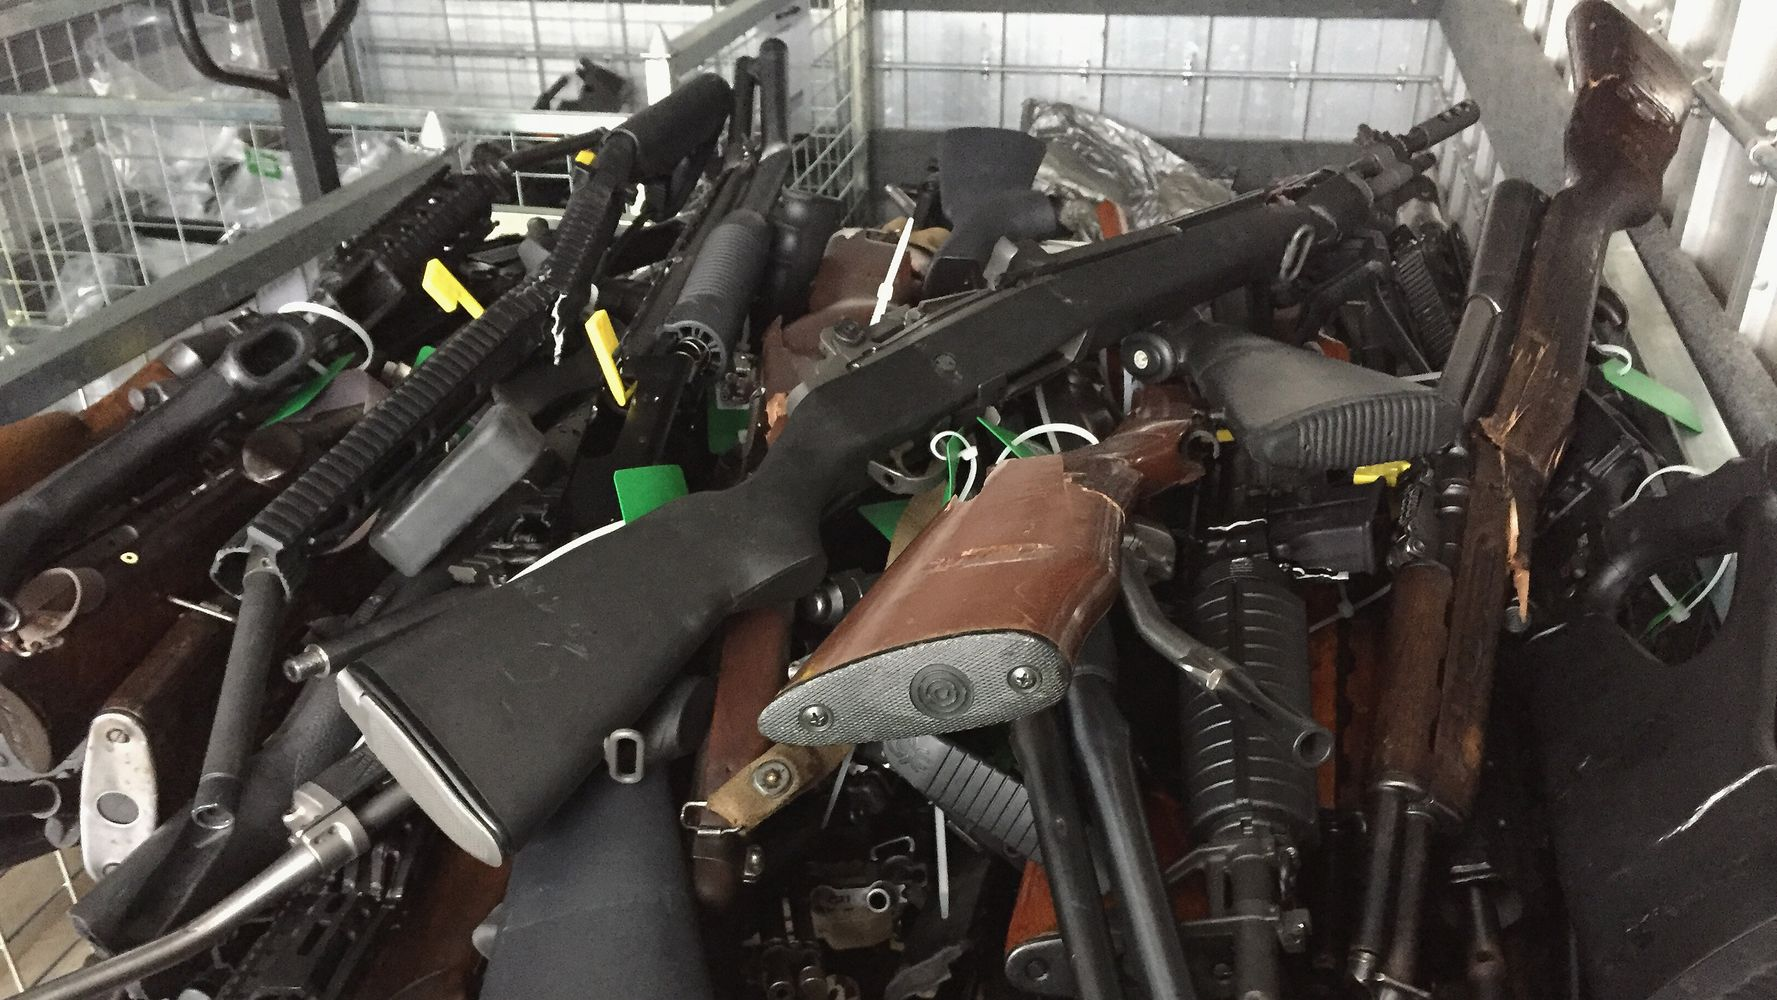 Westlake Legal Group 5d517b0c2400003200b73a66 New Zealand Gun Owners Surrender Over 10,000 Firearms After Christchurch Attack